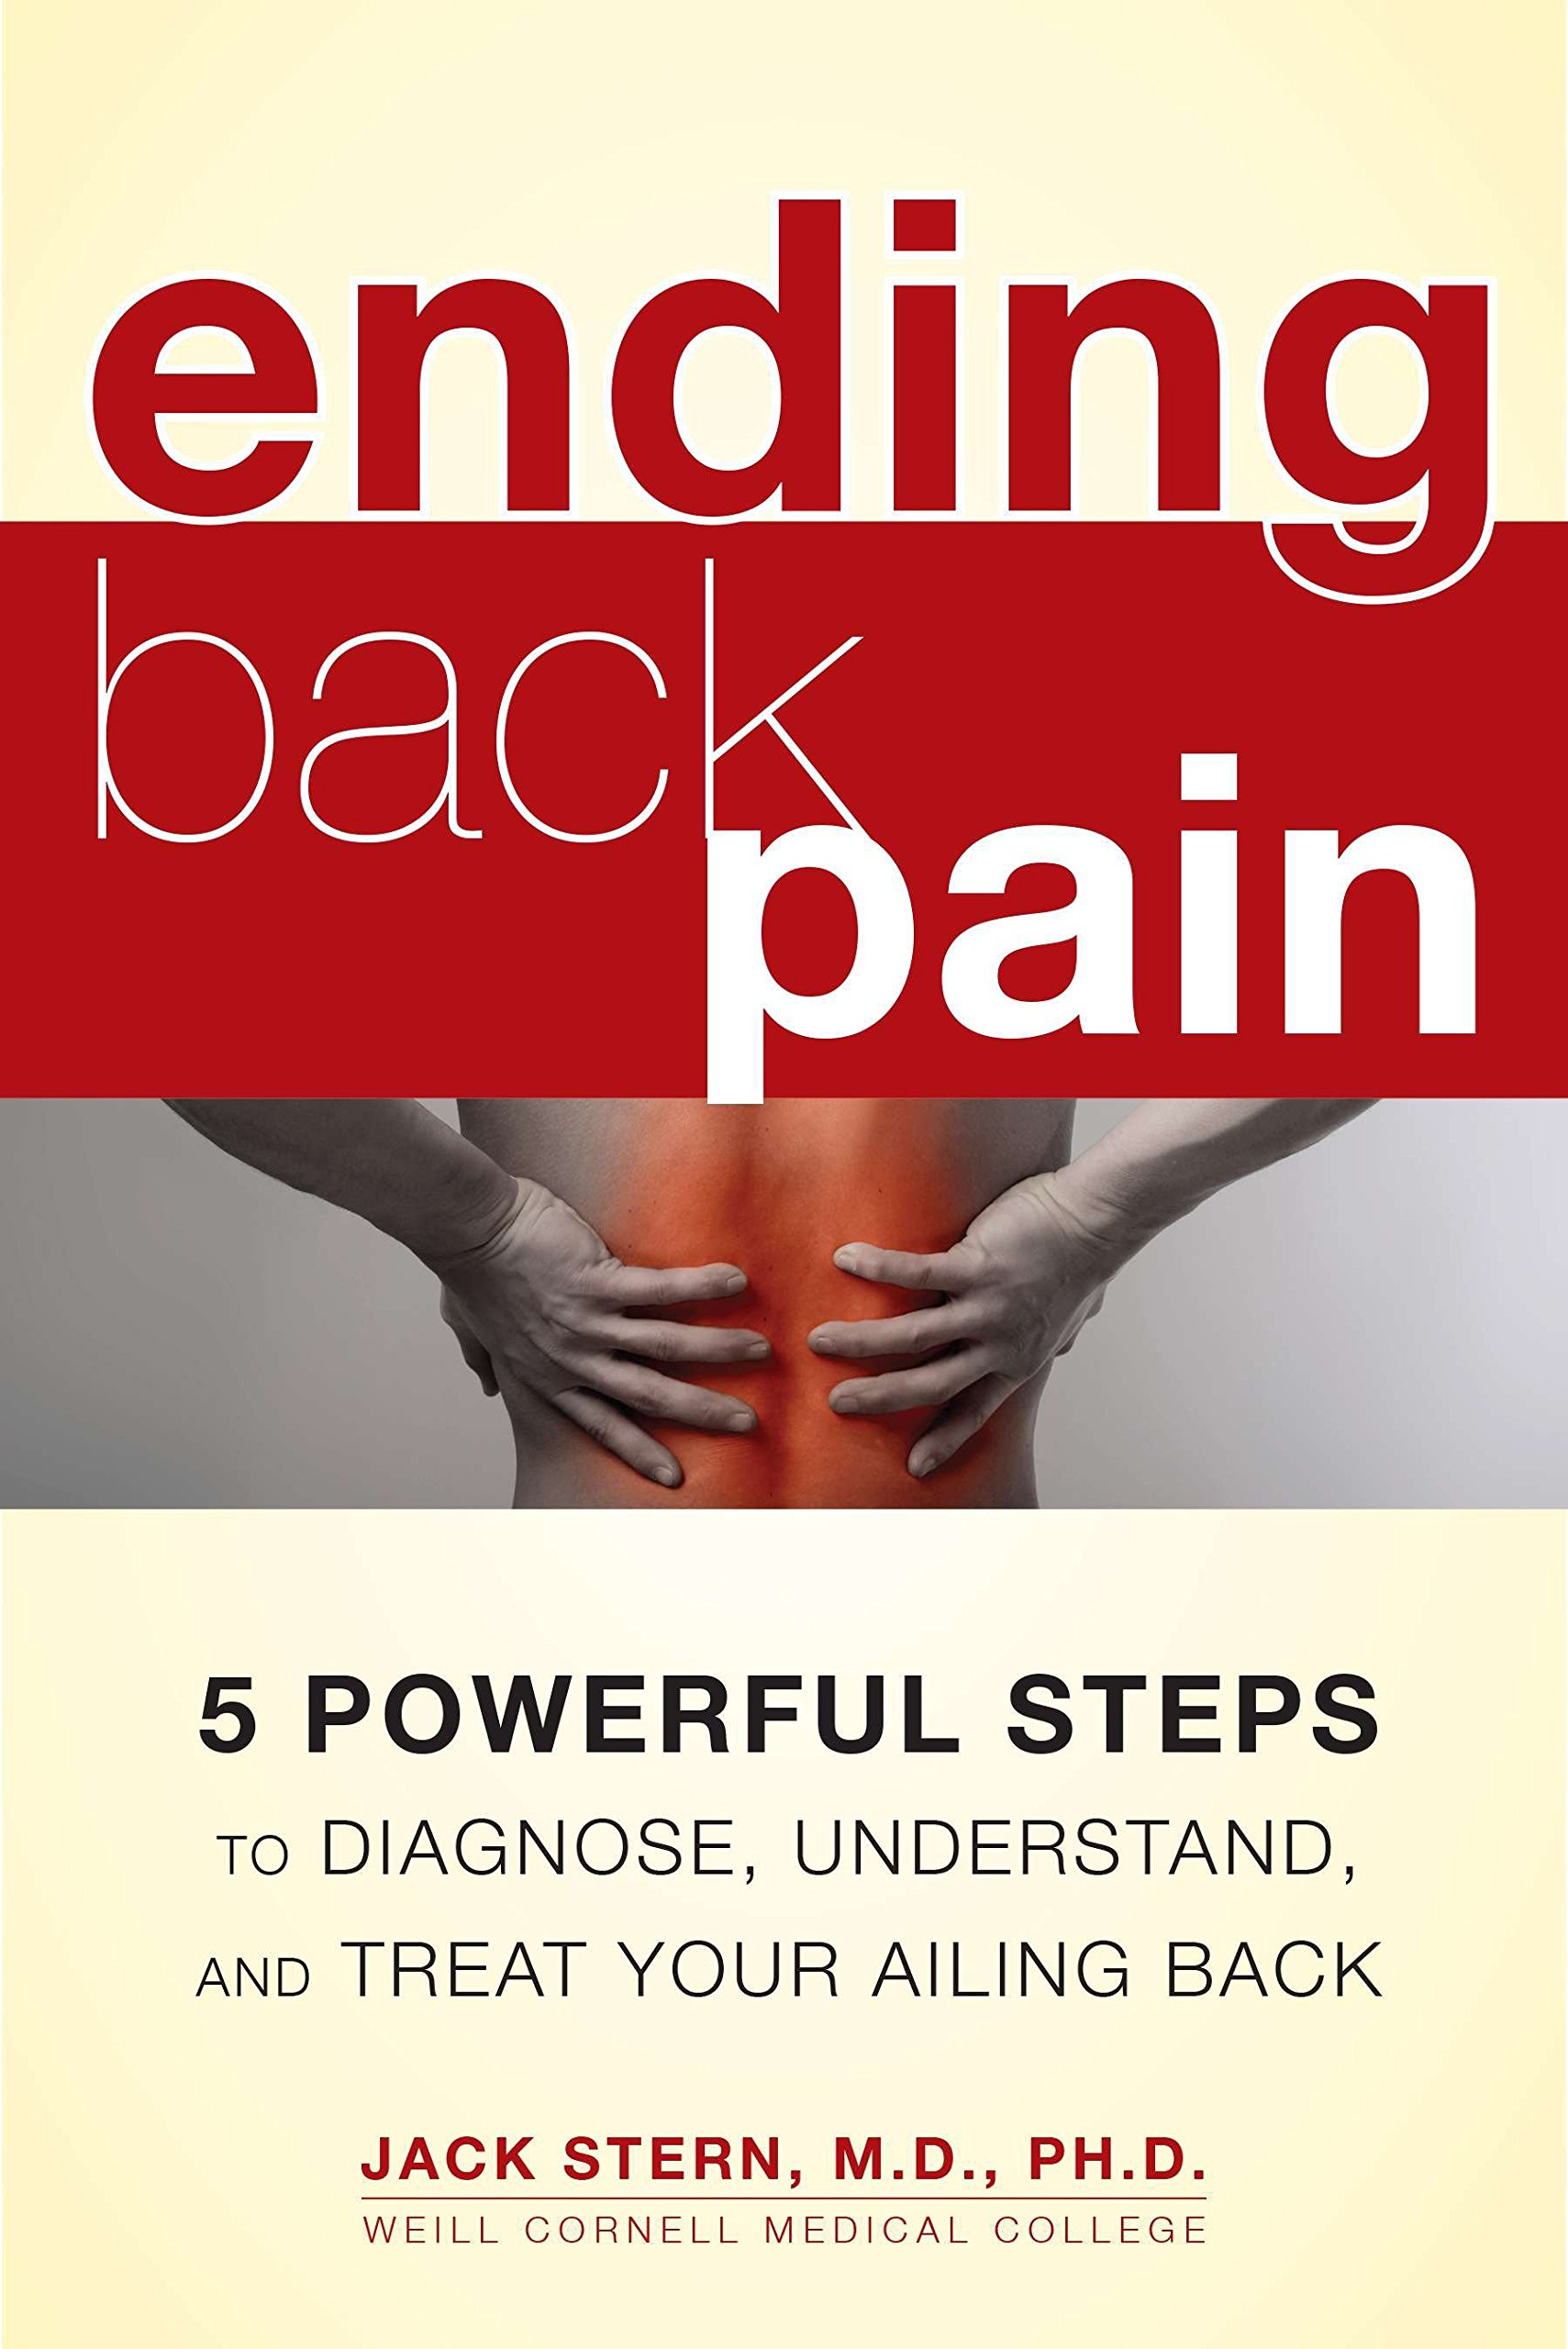 Ending Back Pain: 5 Powerful Steps to Diagnose, Understand